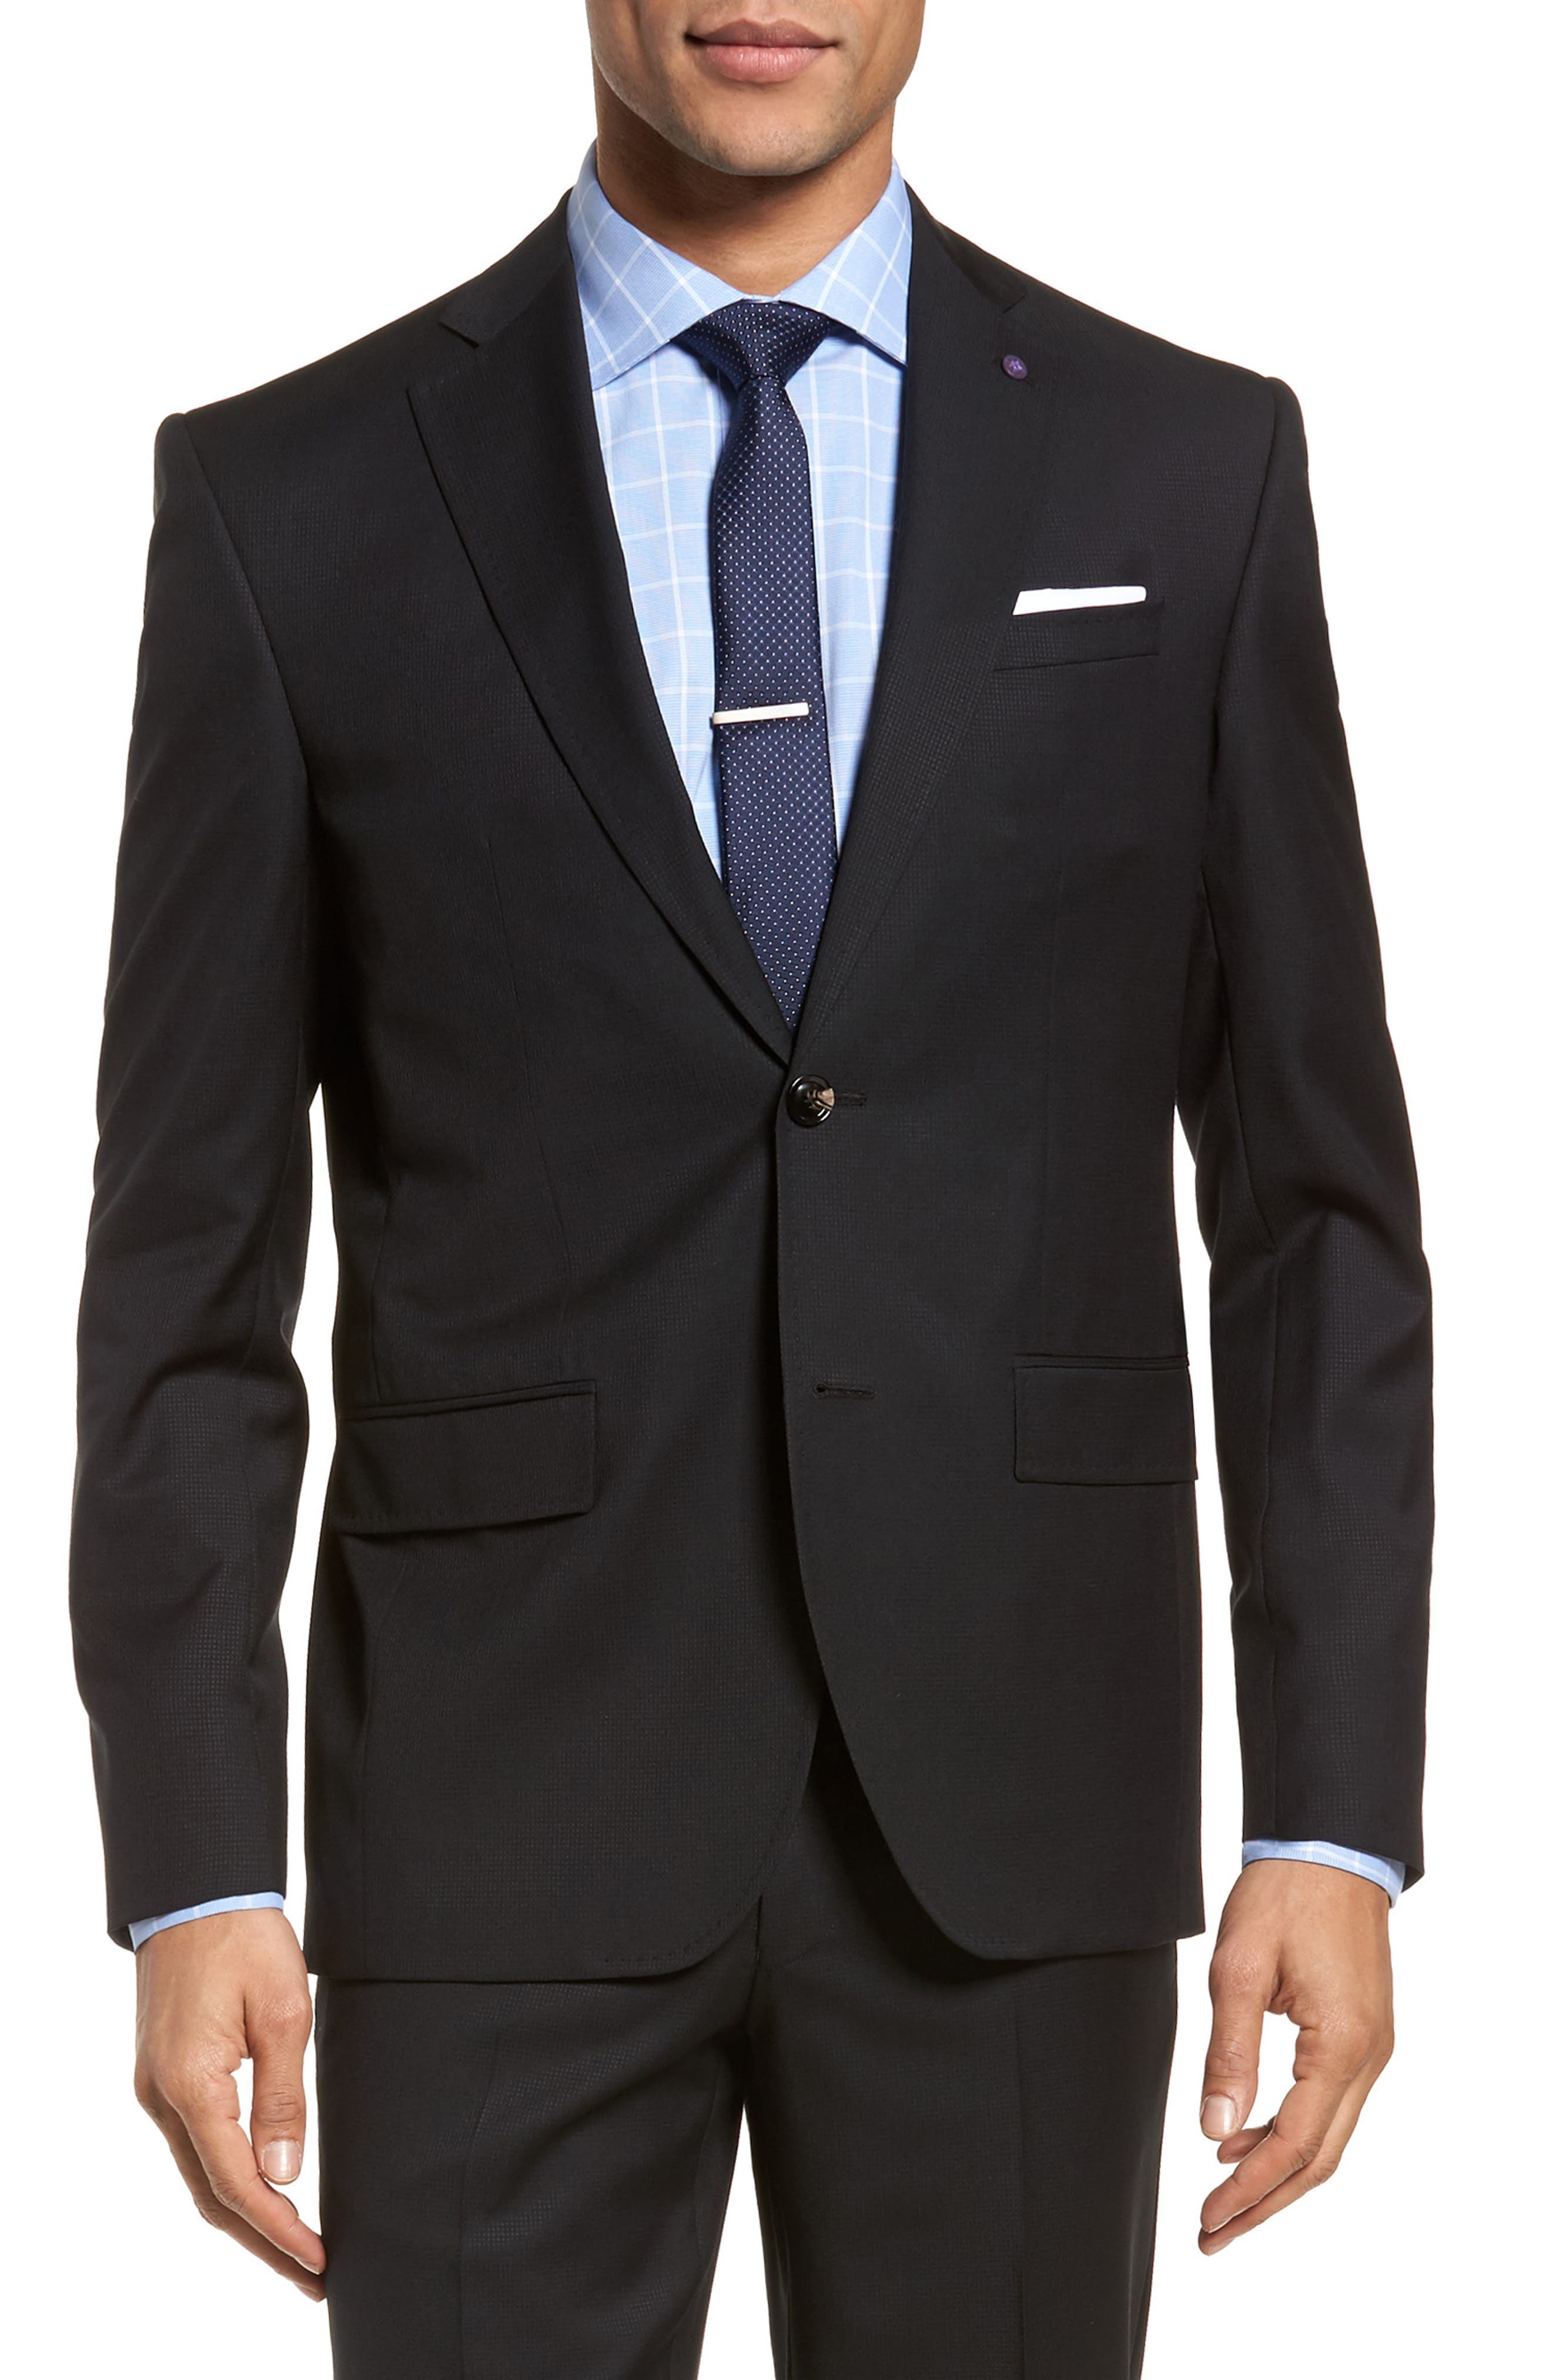 Roger Extra Slim Fit Solid Wool Suit,                             Alternate thumbnail 5, color,                             001